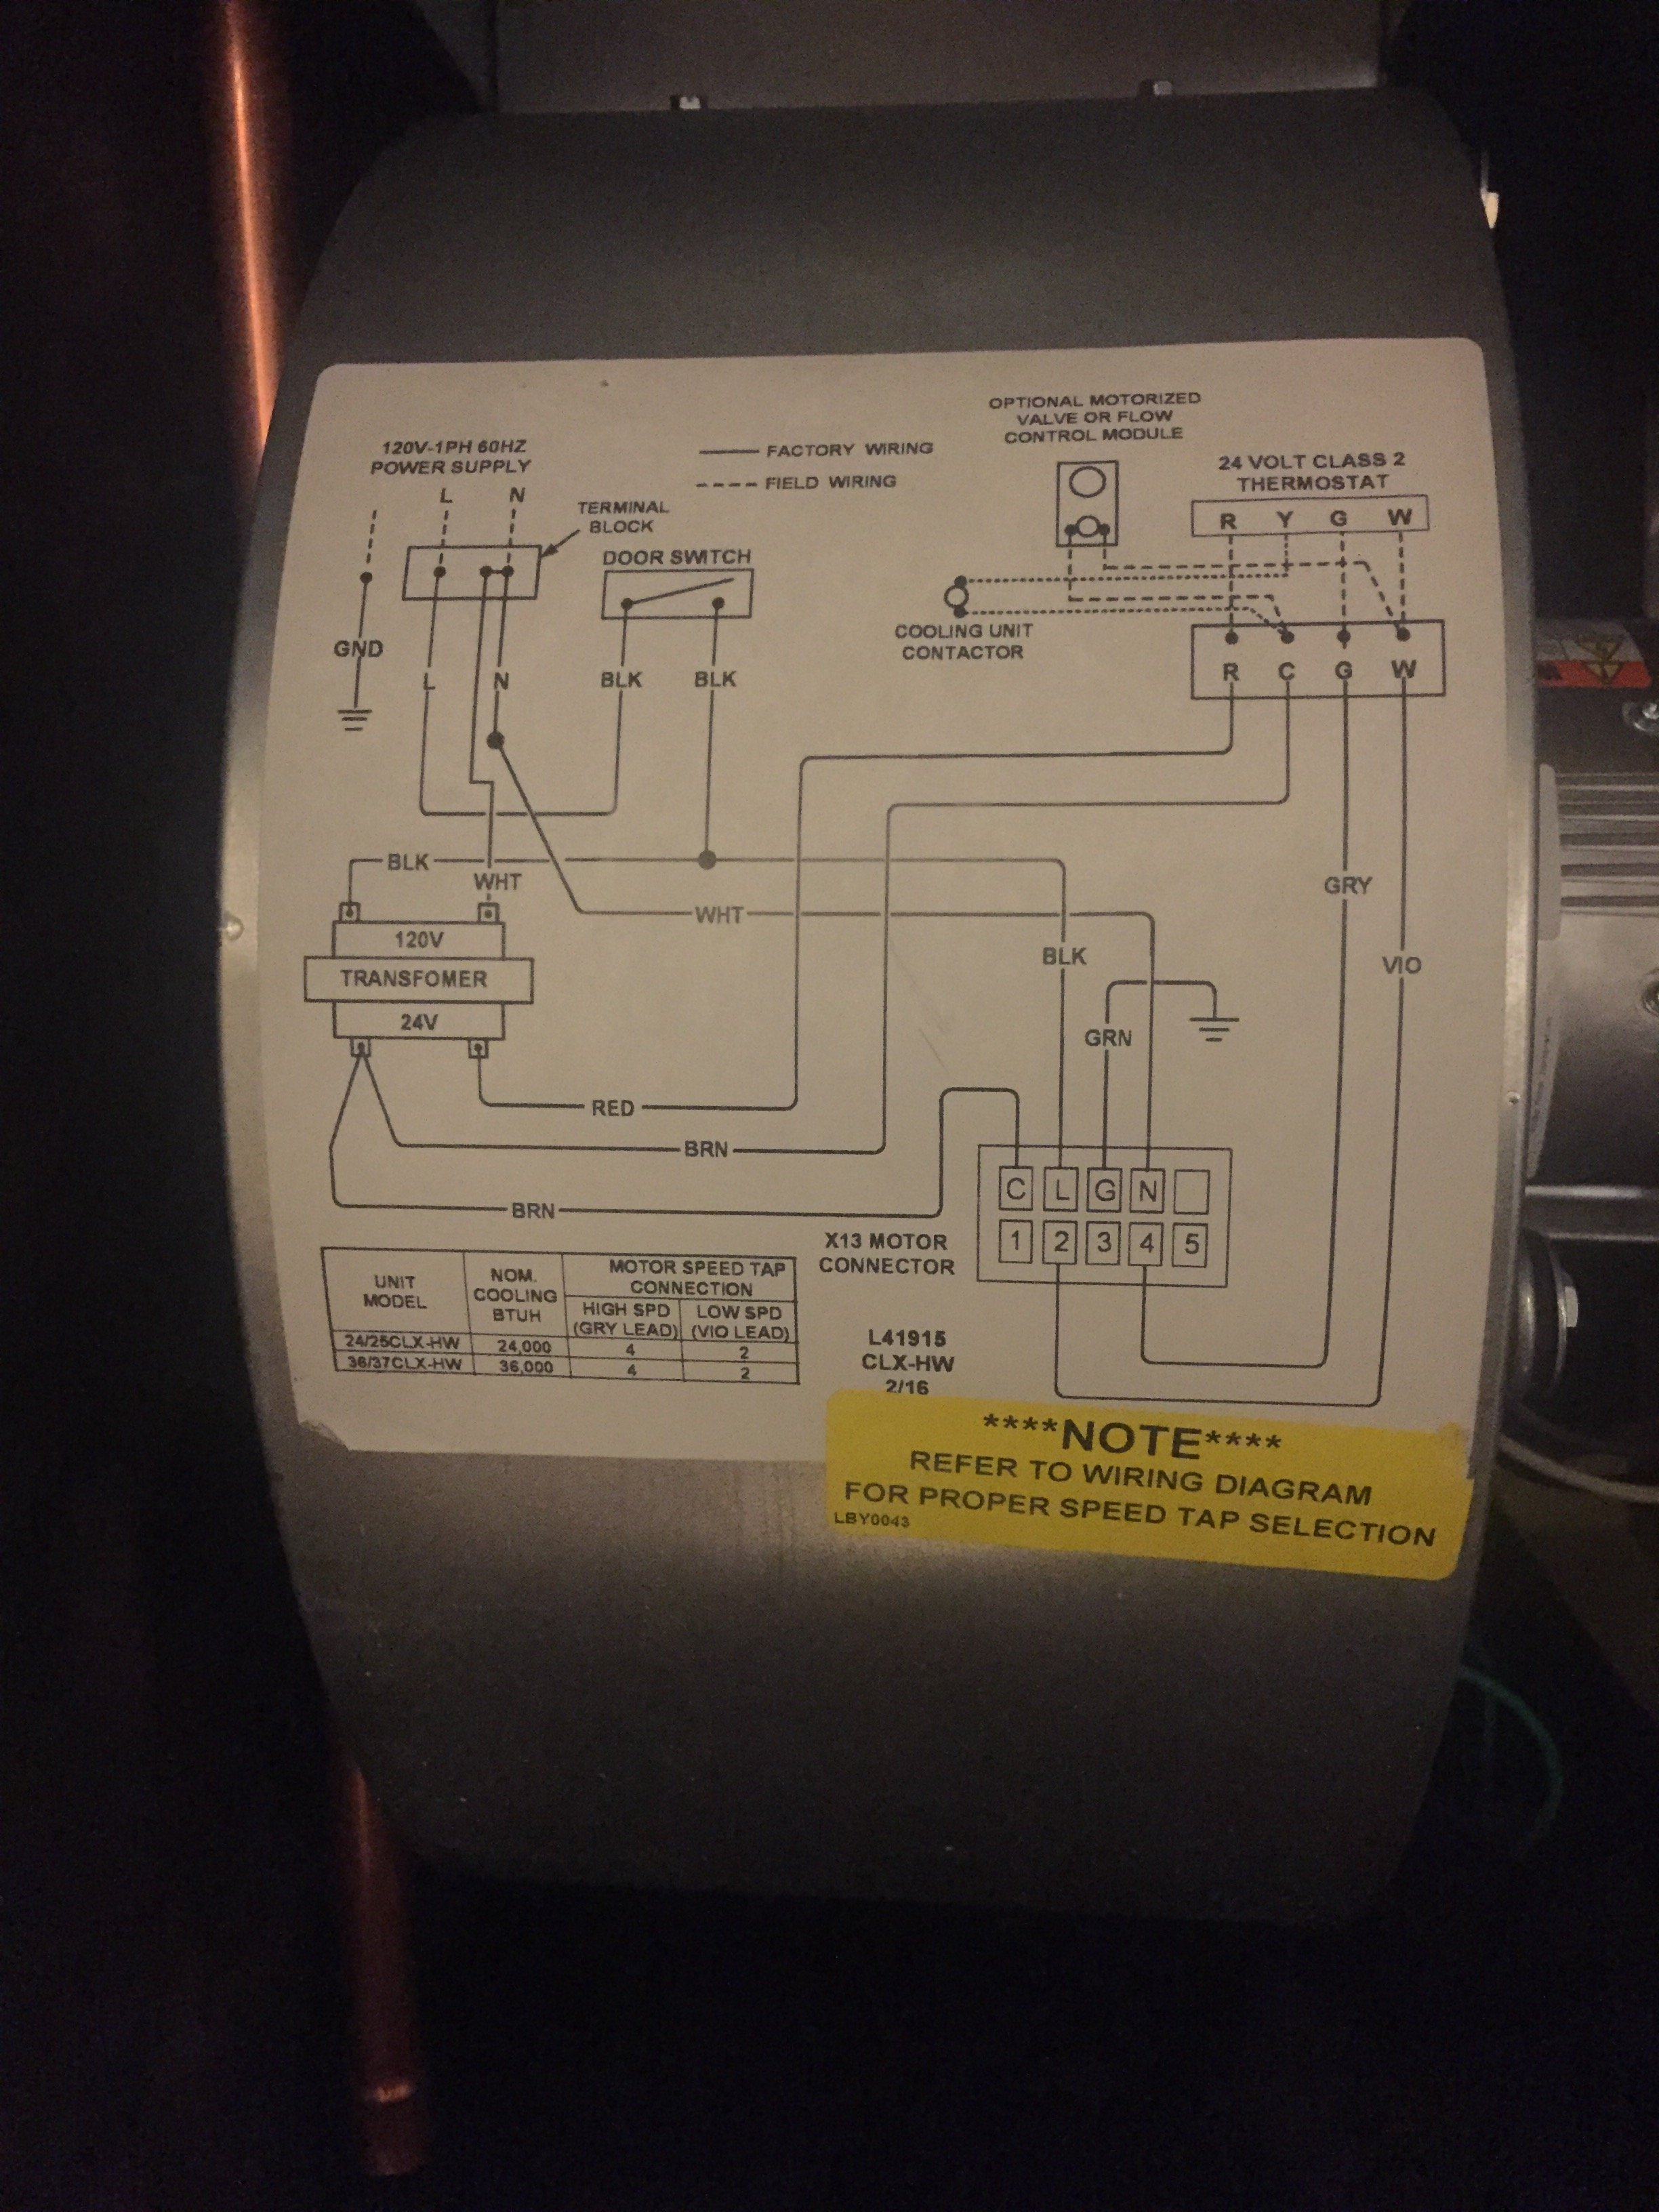 I Am A Home Owner Replaced Heating System In My House With Hydro Nest Wire Schematic Img 5522